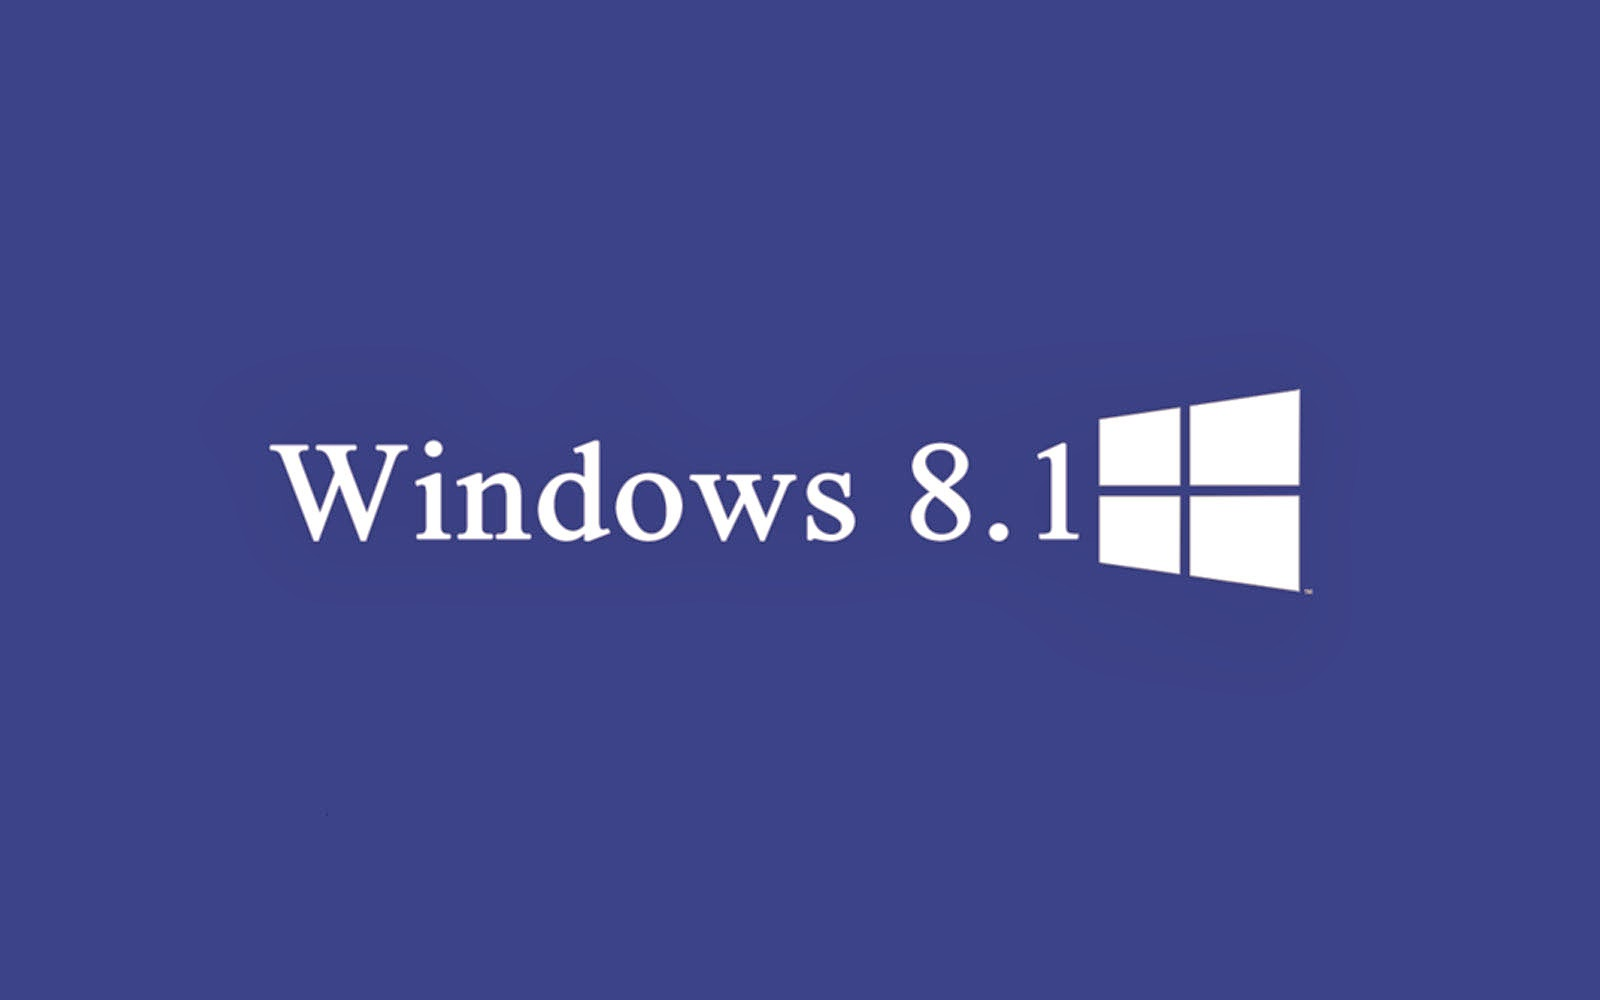 Install and download windows - Microsoft Community